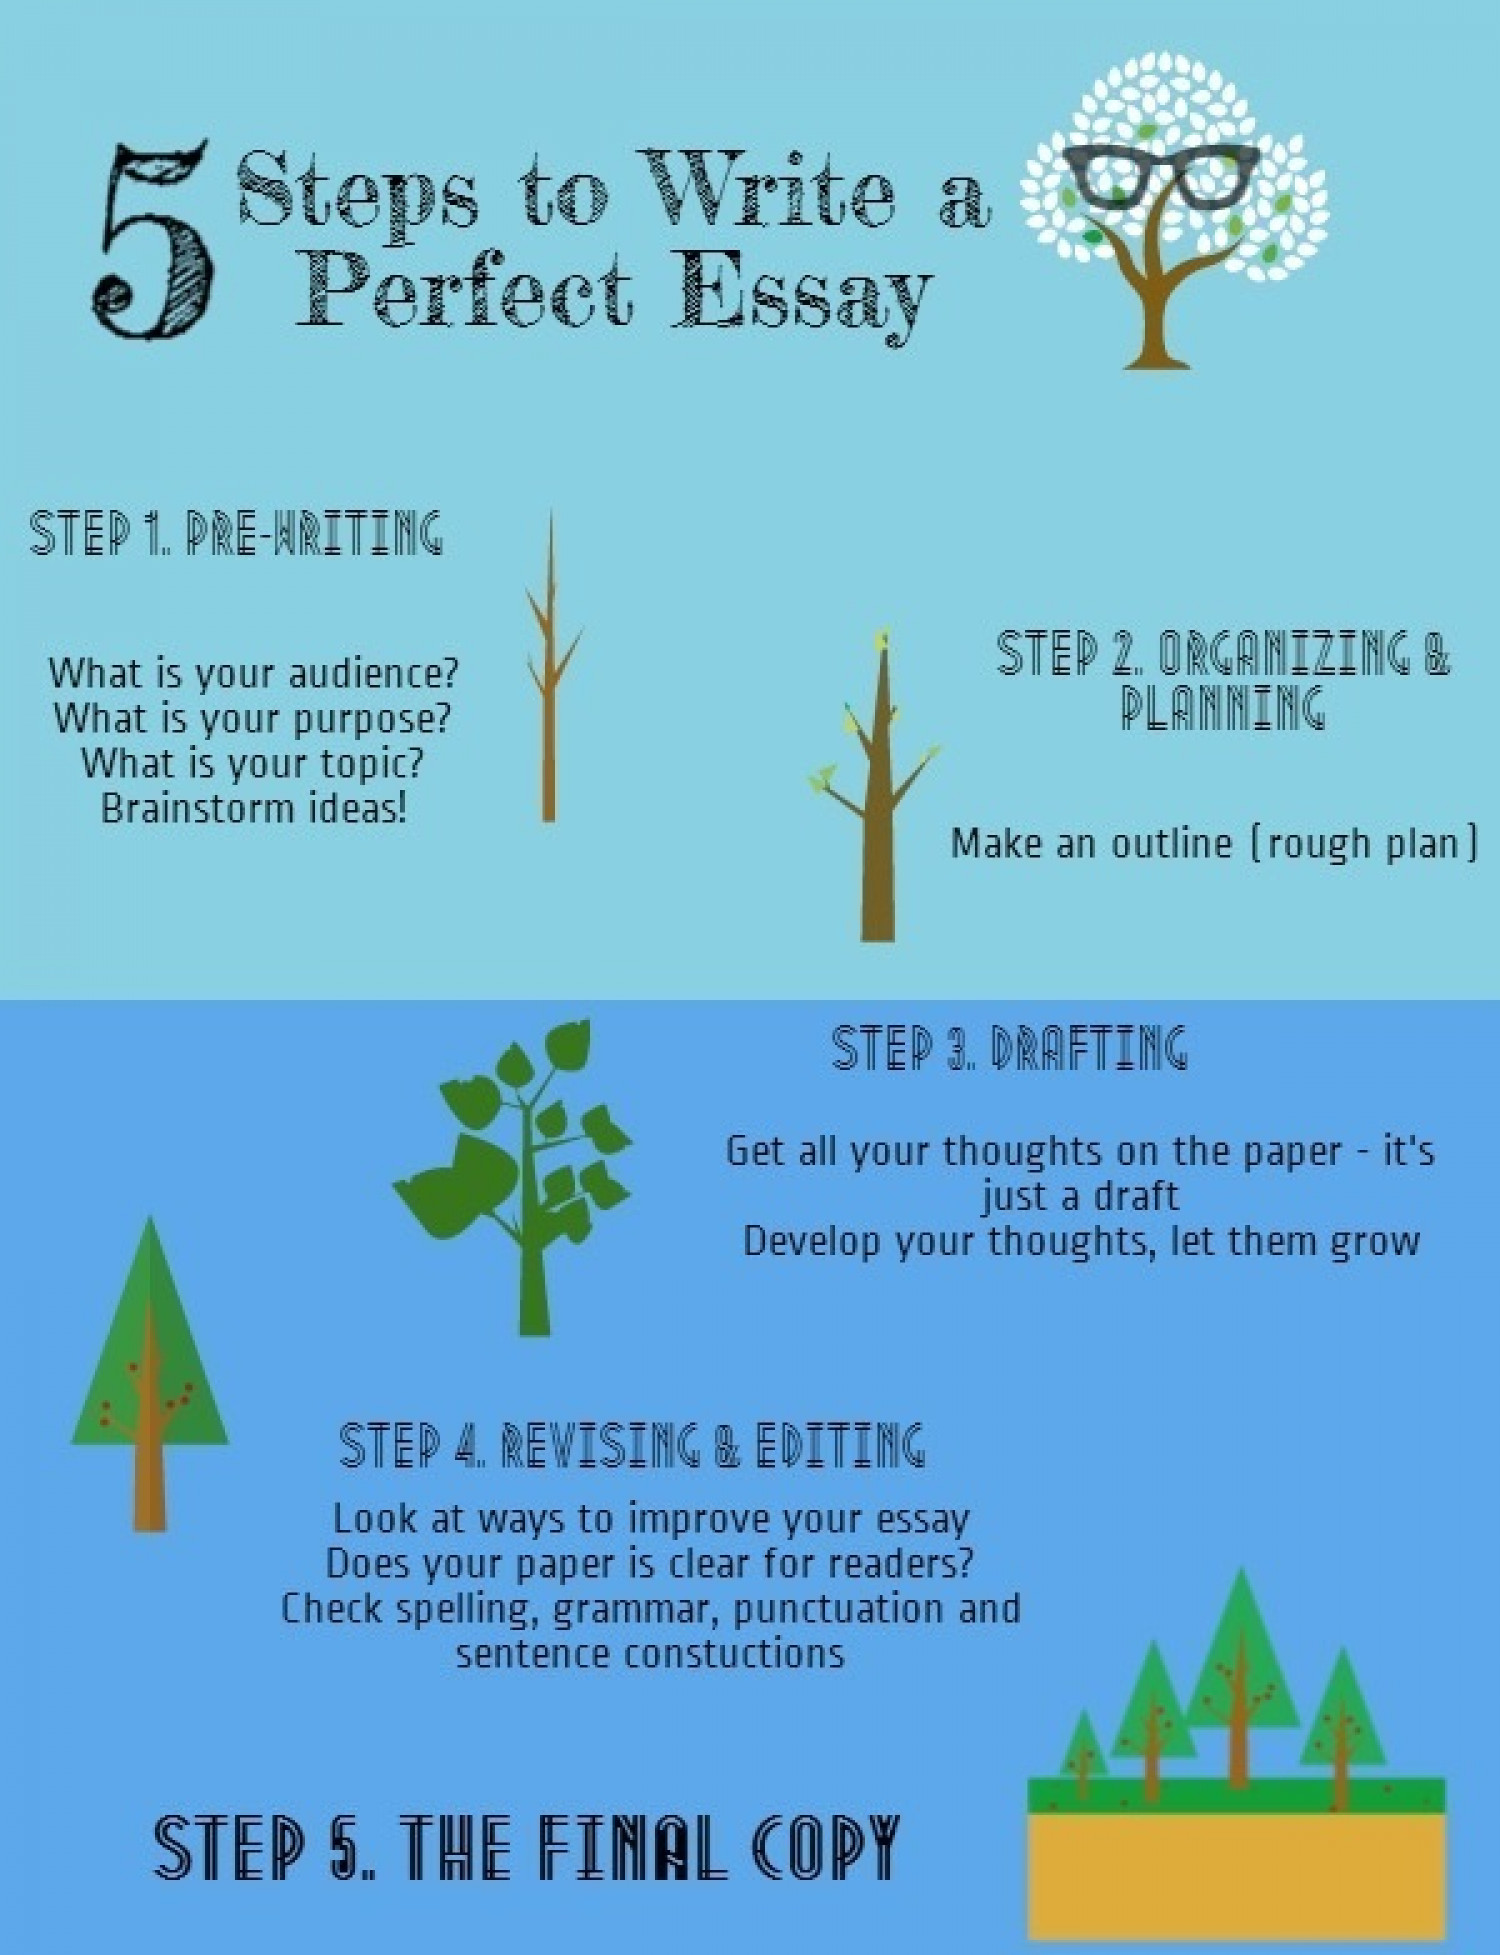 Judicial Activism Essay  Steps To Write A Perfect Essay Infographic Essay On Antigone also Essays For Kids  Steps To Write A Perfect Essay  Visually Career Objectives Essay